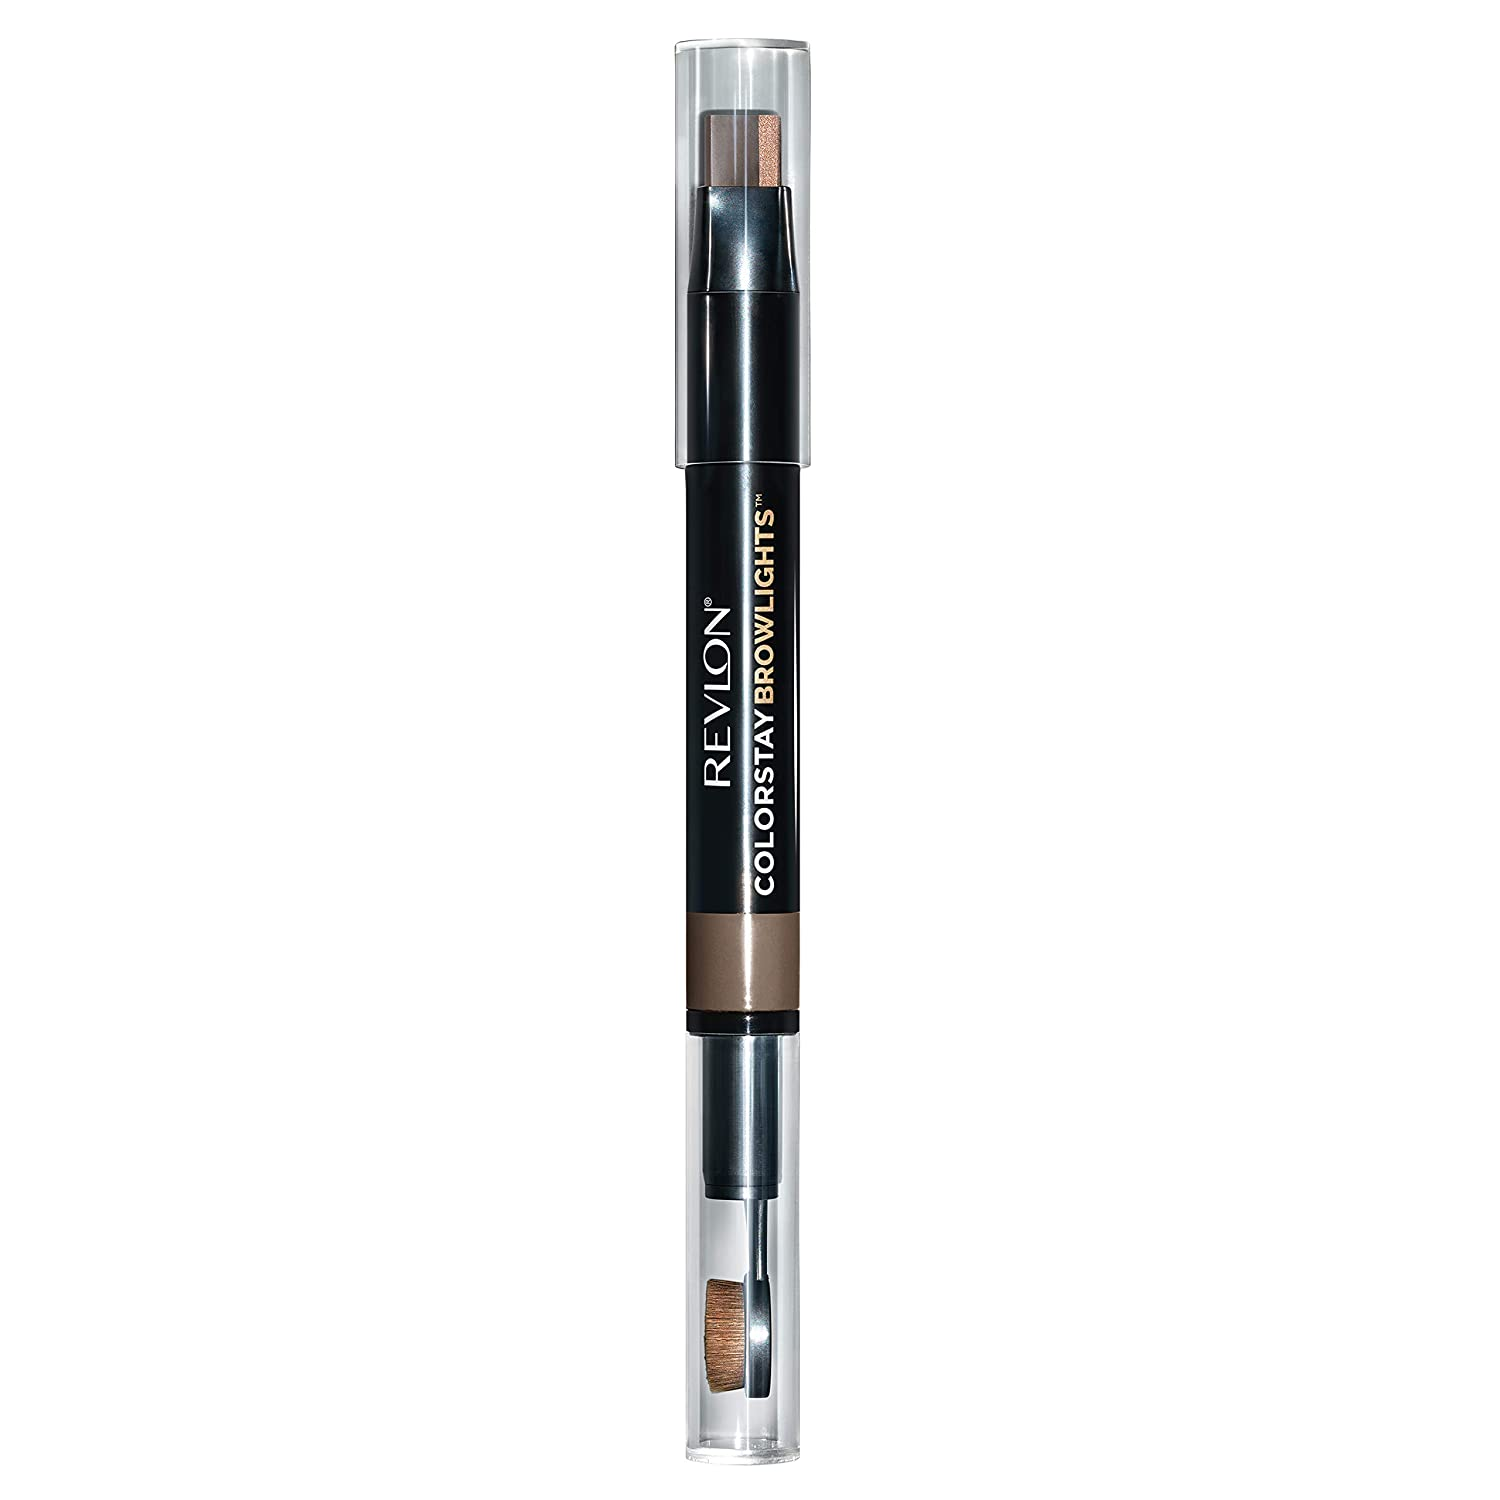 Revlon Colorstay Browlights Pencil, Eyebrow Pencil & Brow Highlighter, Medium Brown, 0.038